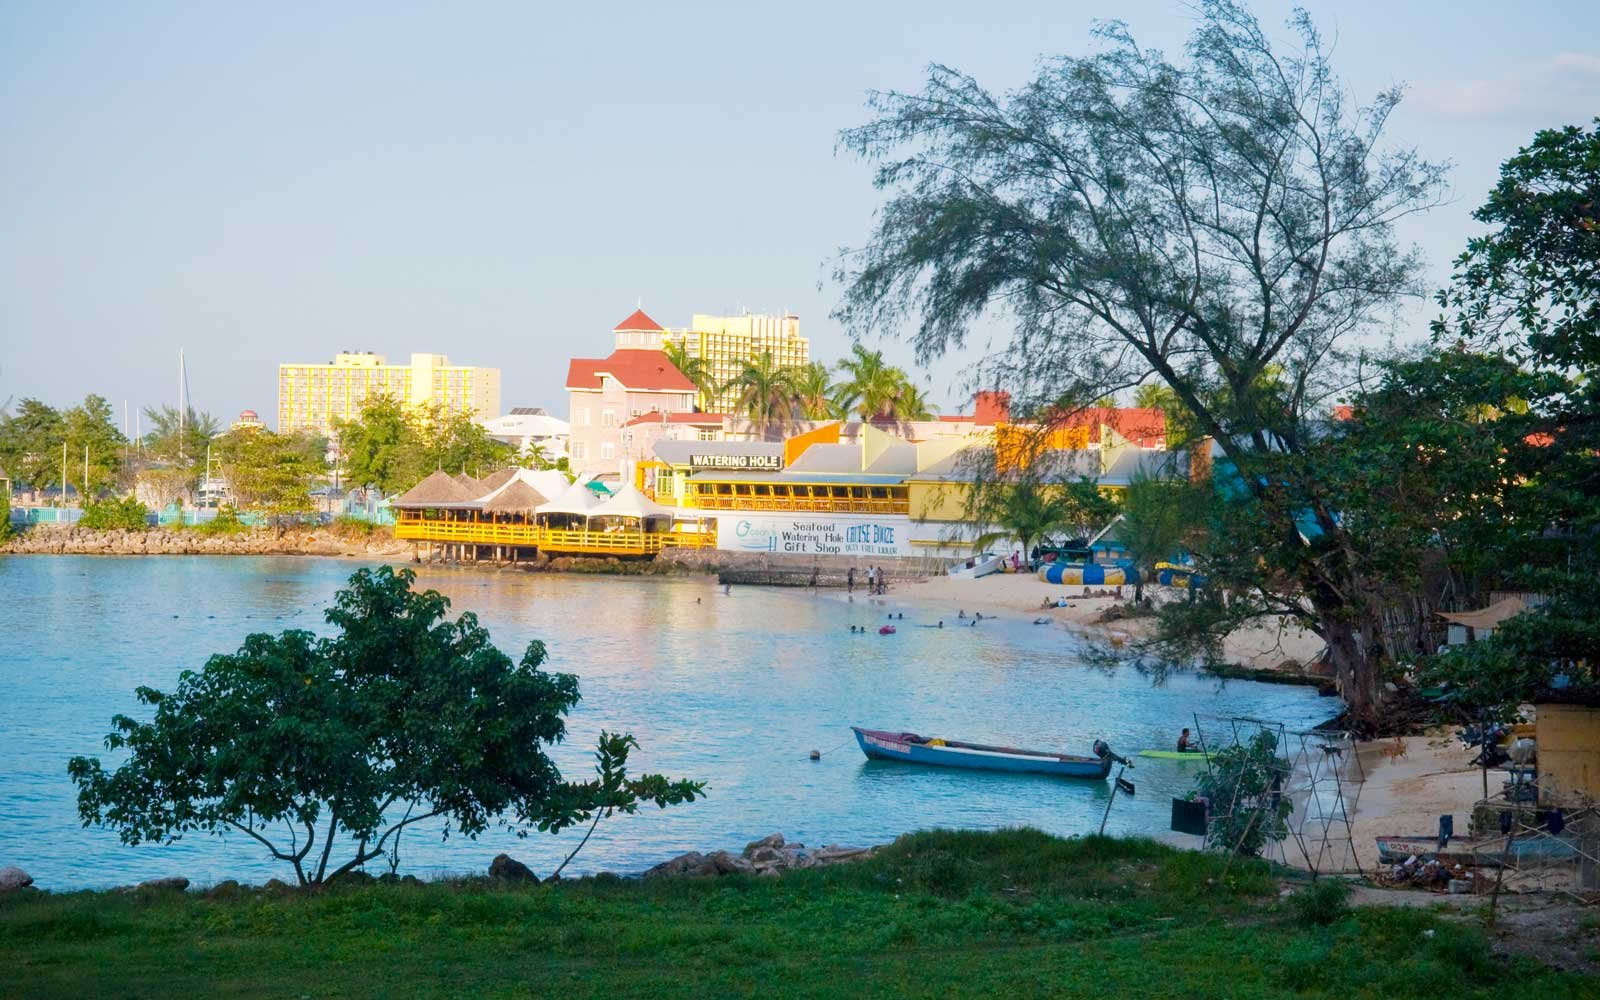 Hotels and restaurants on Ocho Rios Bay seen from Fishermans Beach, Jamaica